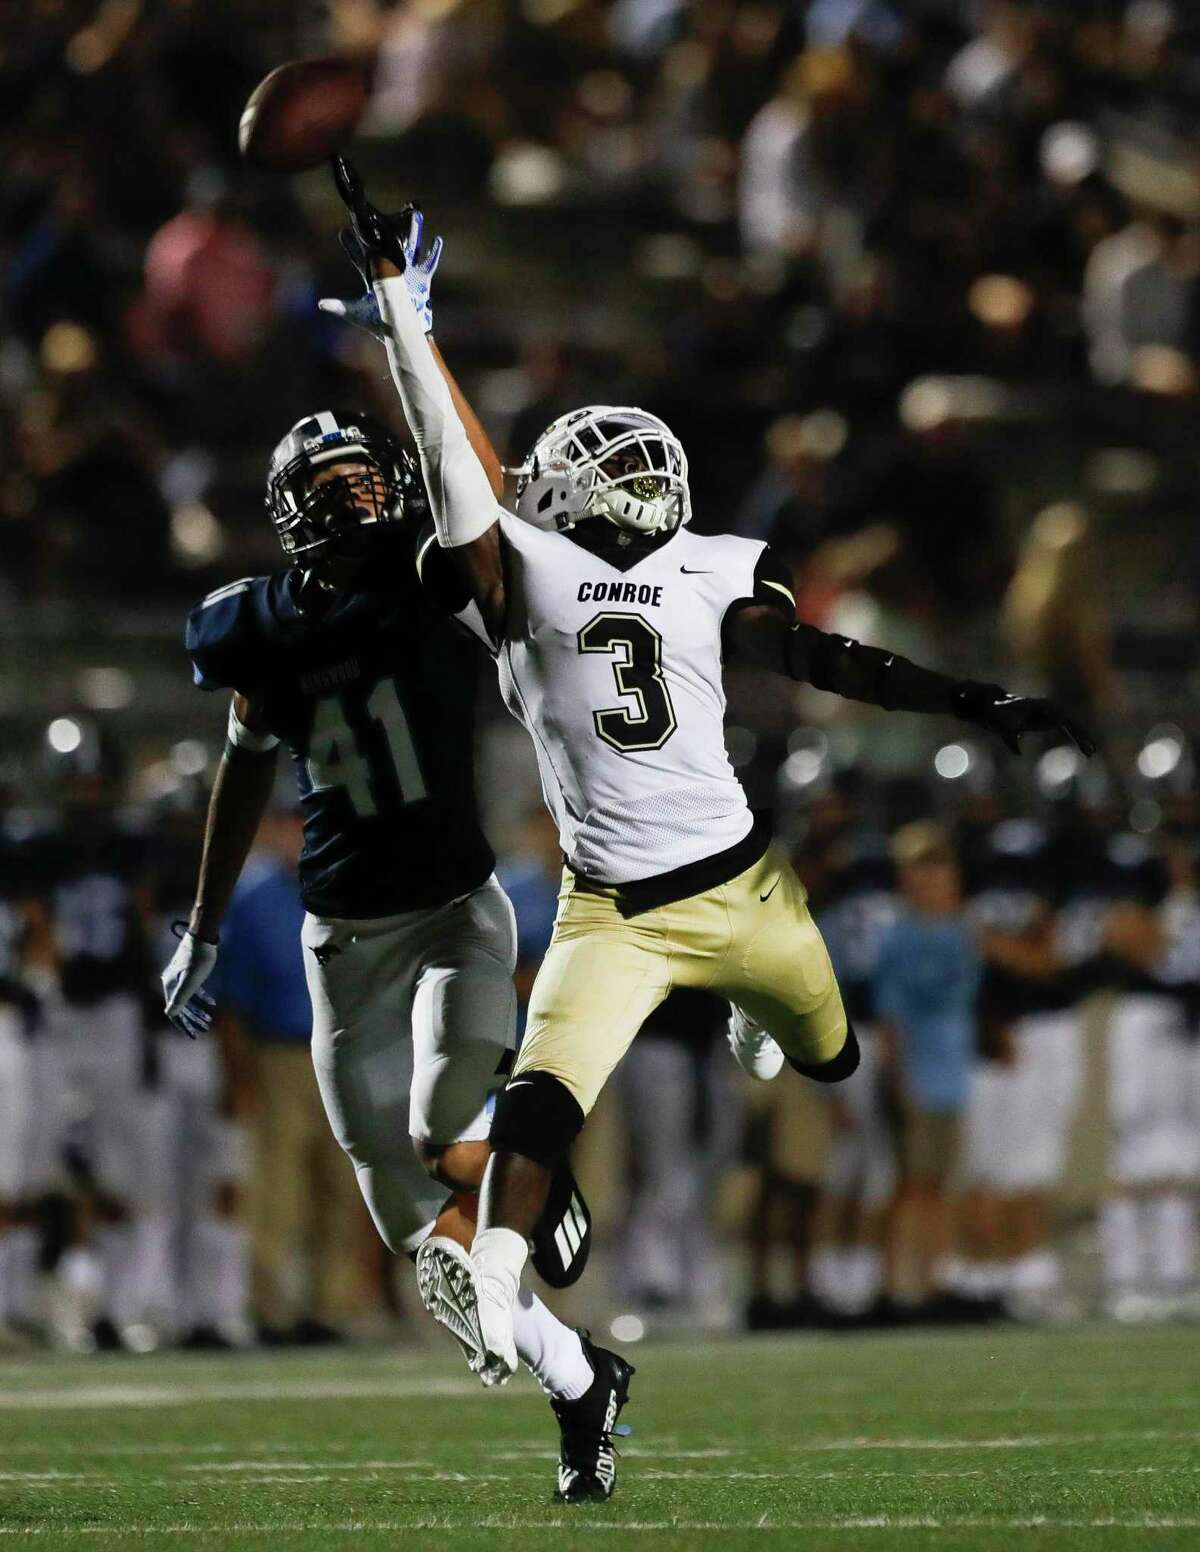 Conroe wide receiver Louis Williams III (3) tries to haul in a apss during the third quarter of a non-district high school football game at Turner Stadium, Thursday, Sept. 2, 2021, in Humble.